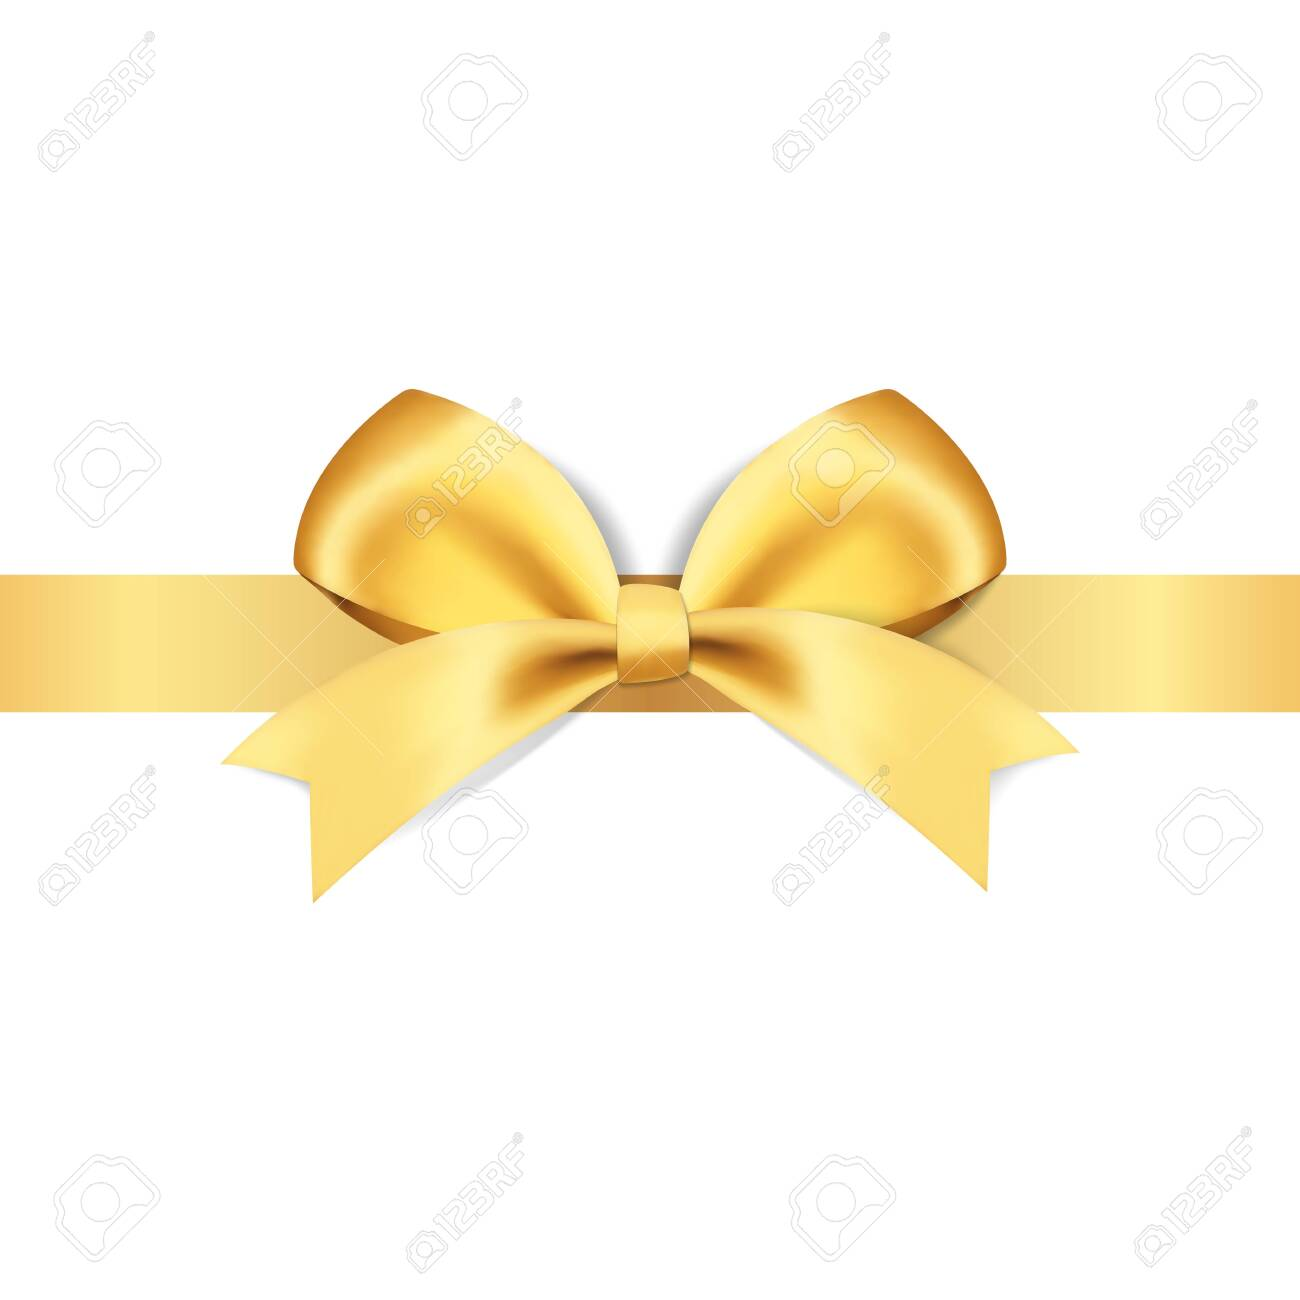 Decorative golden bows with yellow ribbon vector illustration - 148334707